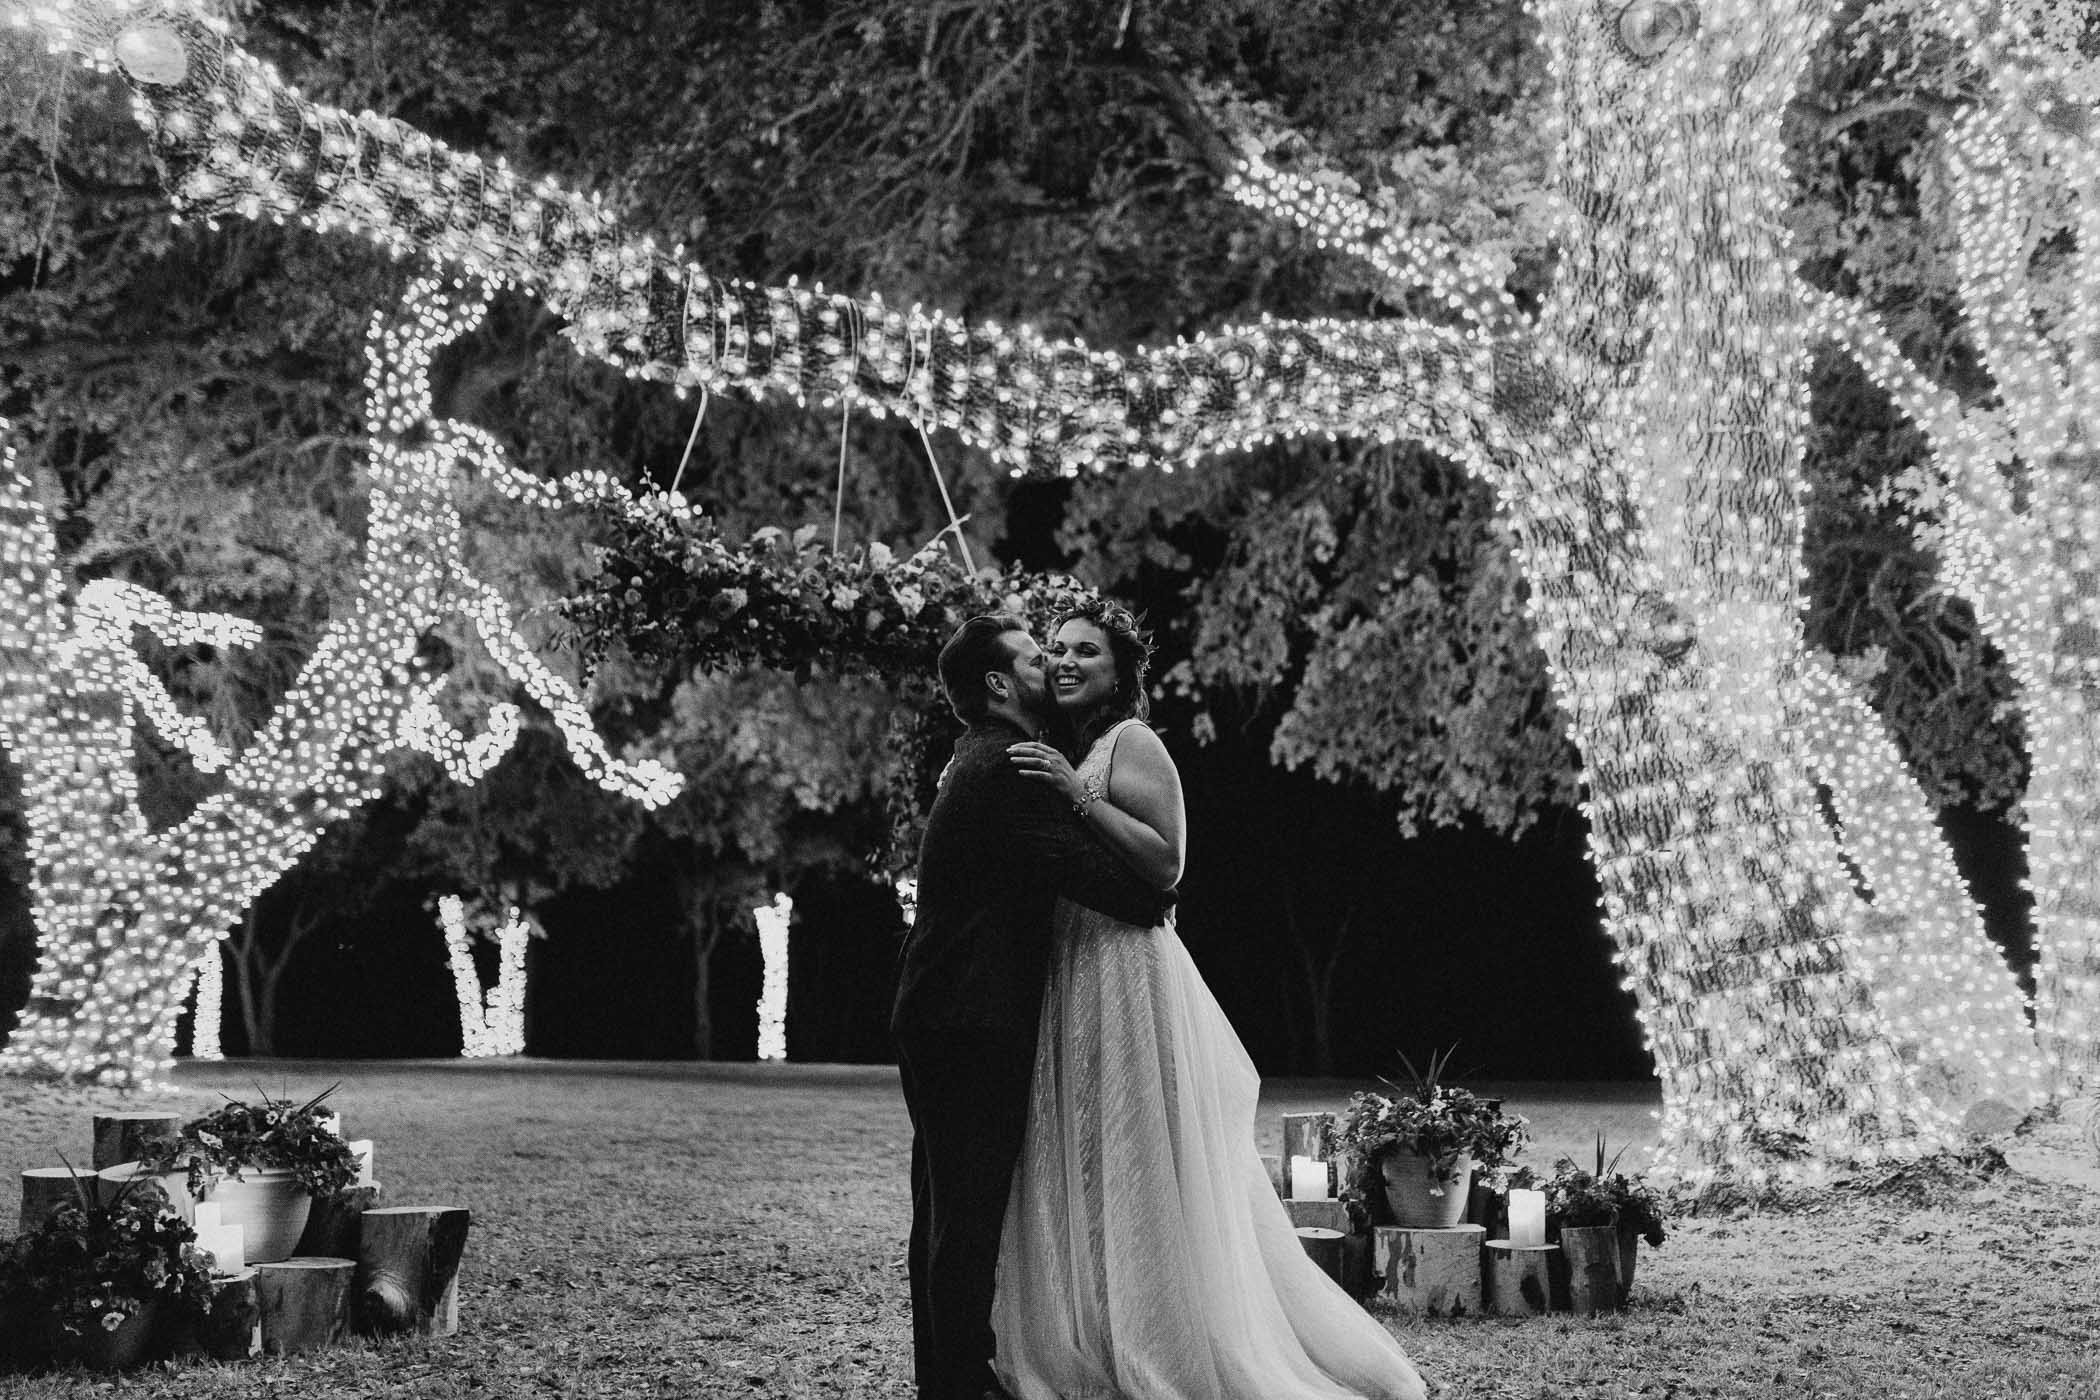 Image lit by string lights of bride and groom being romantic